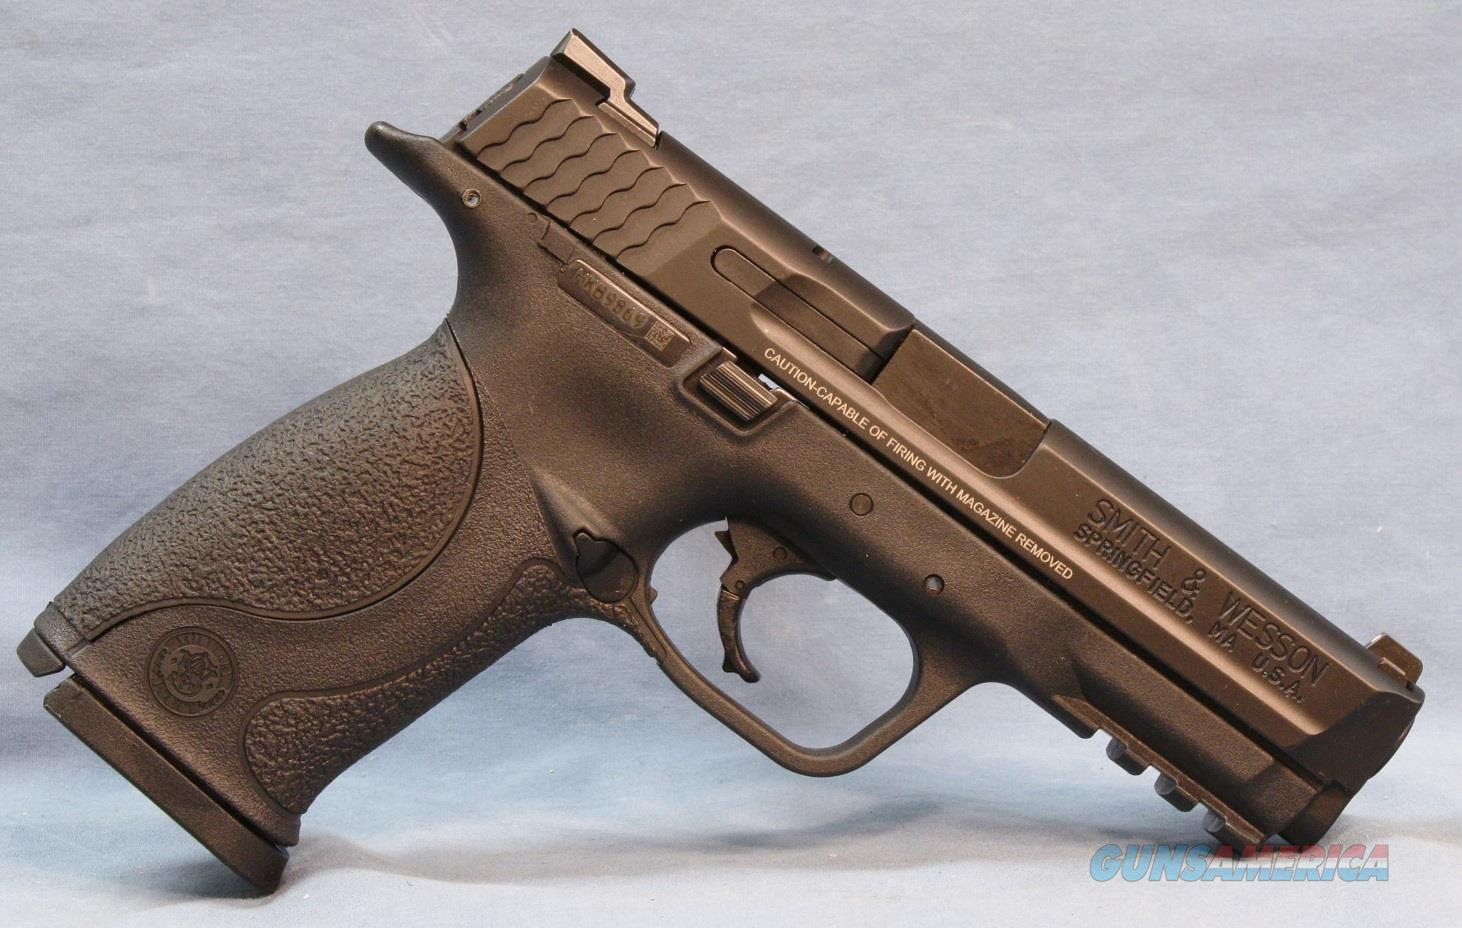 Smith & Wesson M&P 9 Double Action Semi-Automatic Pistol 9mm Luger Free Shipping!  Guns > Pistols > Smith & Wesson Pistols - Autos > Polymer Frame